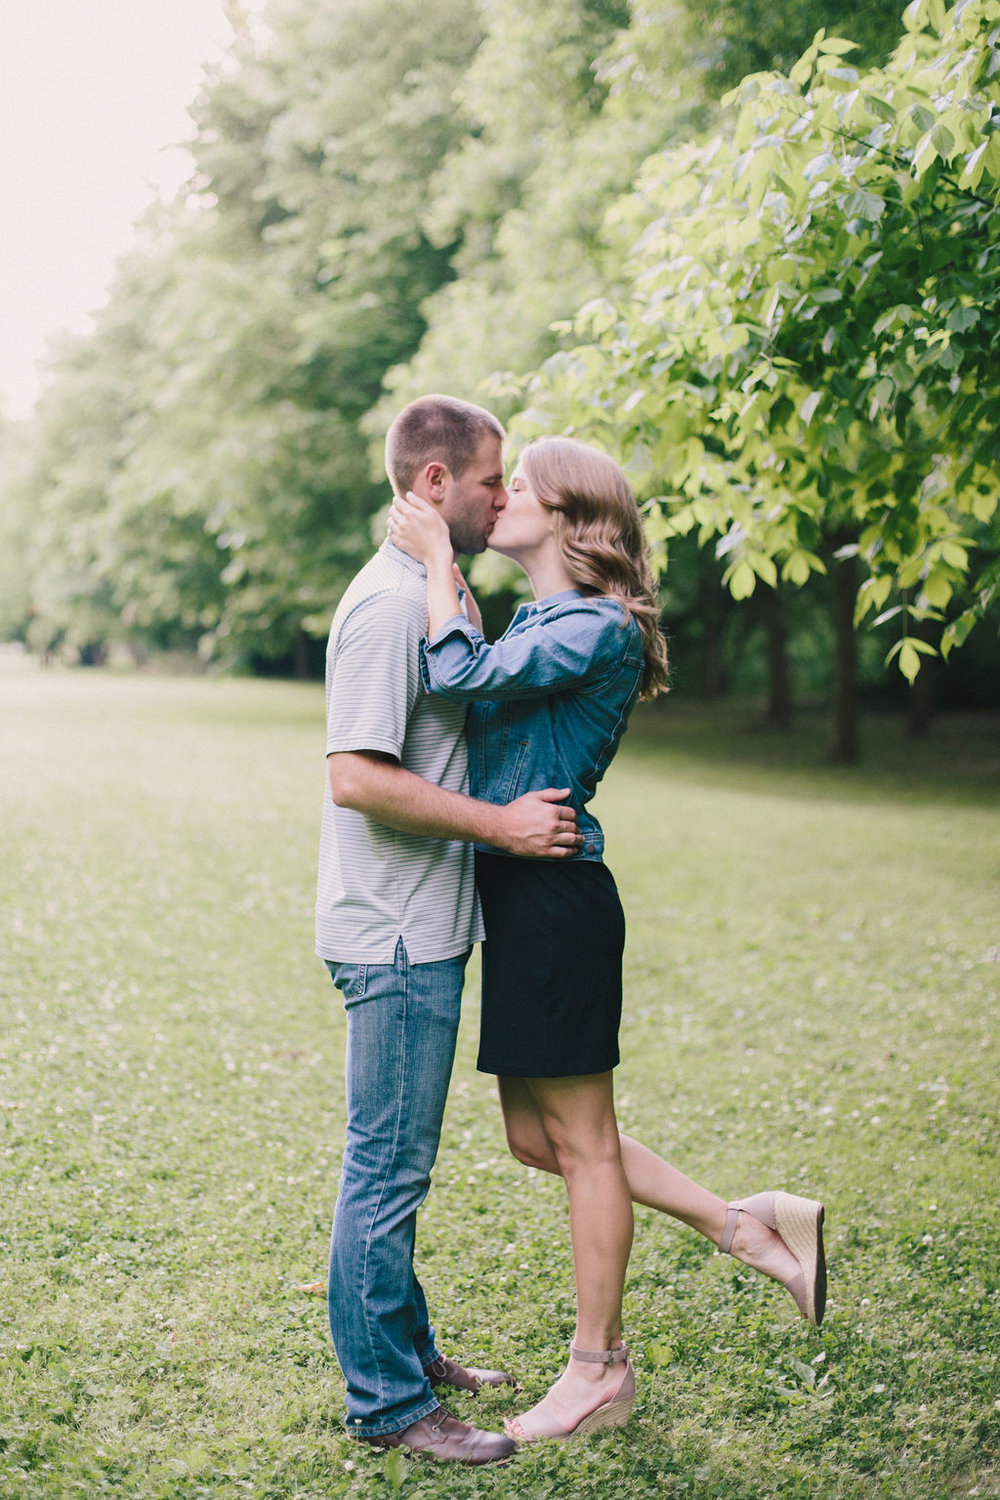 park-summer-atlanta-engagement16.jpg